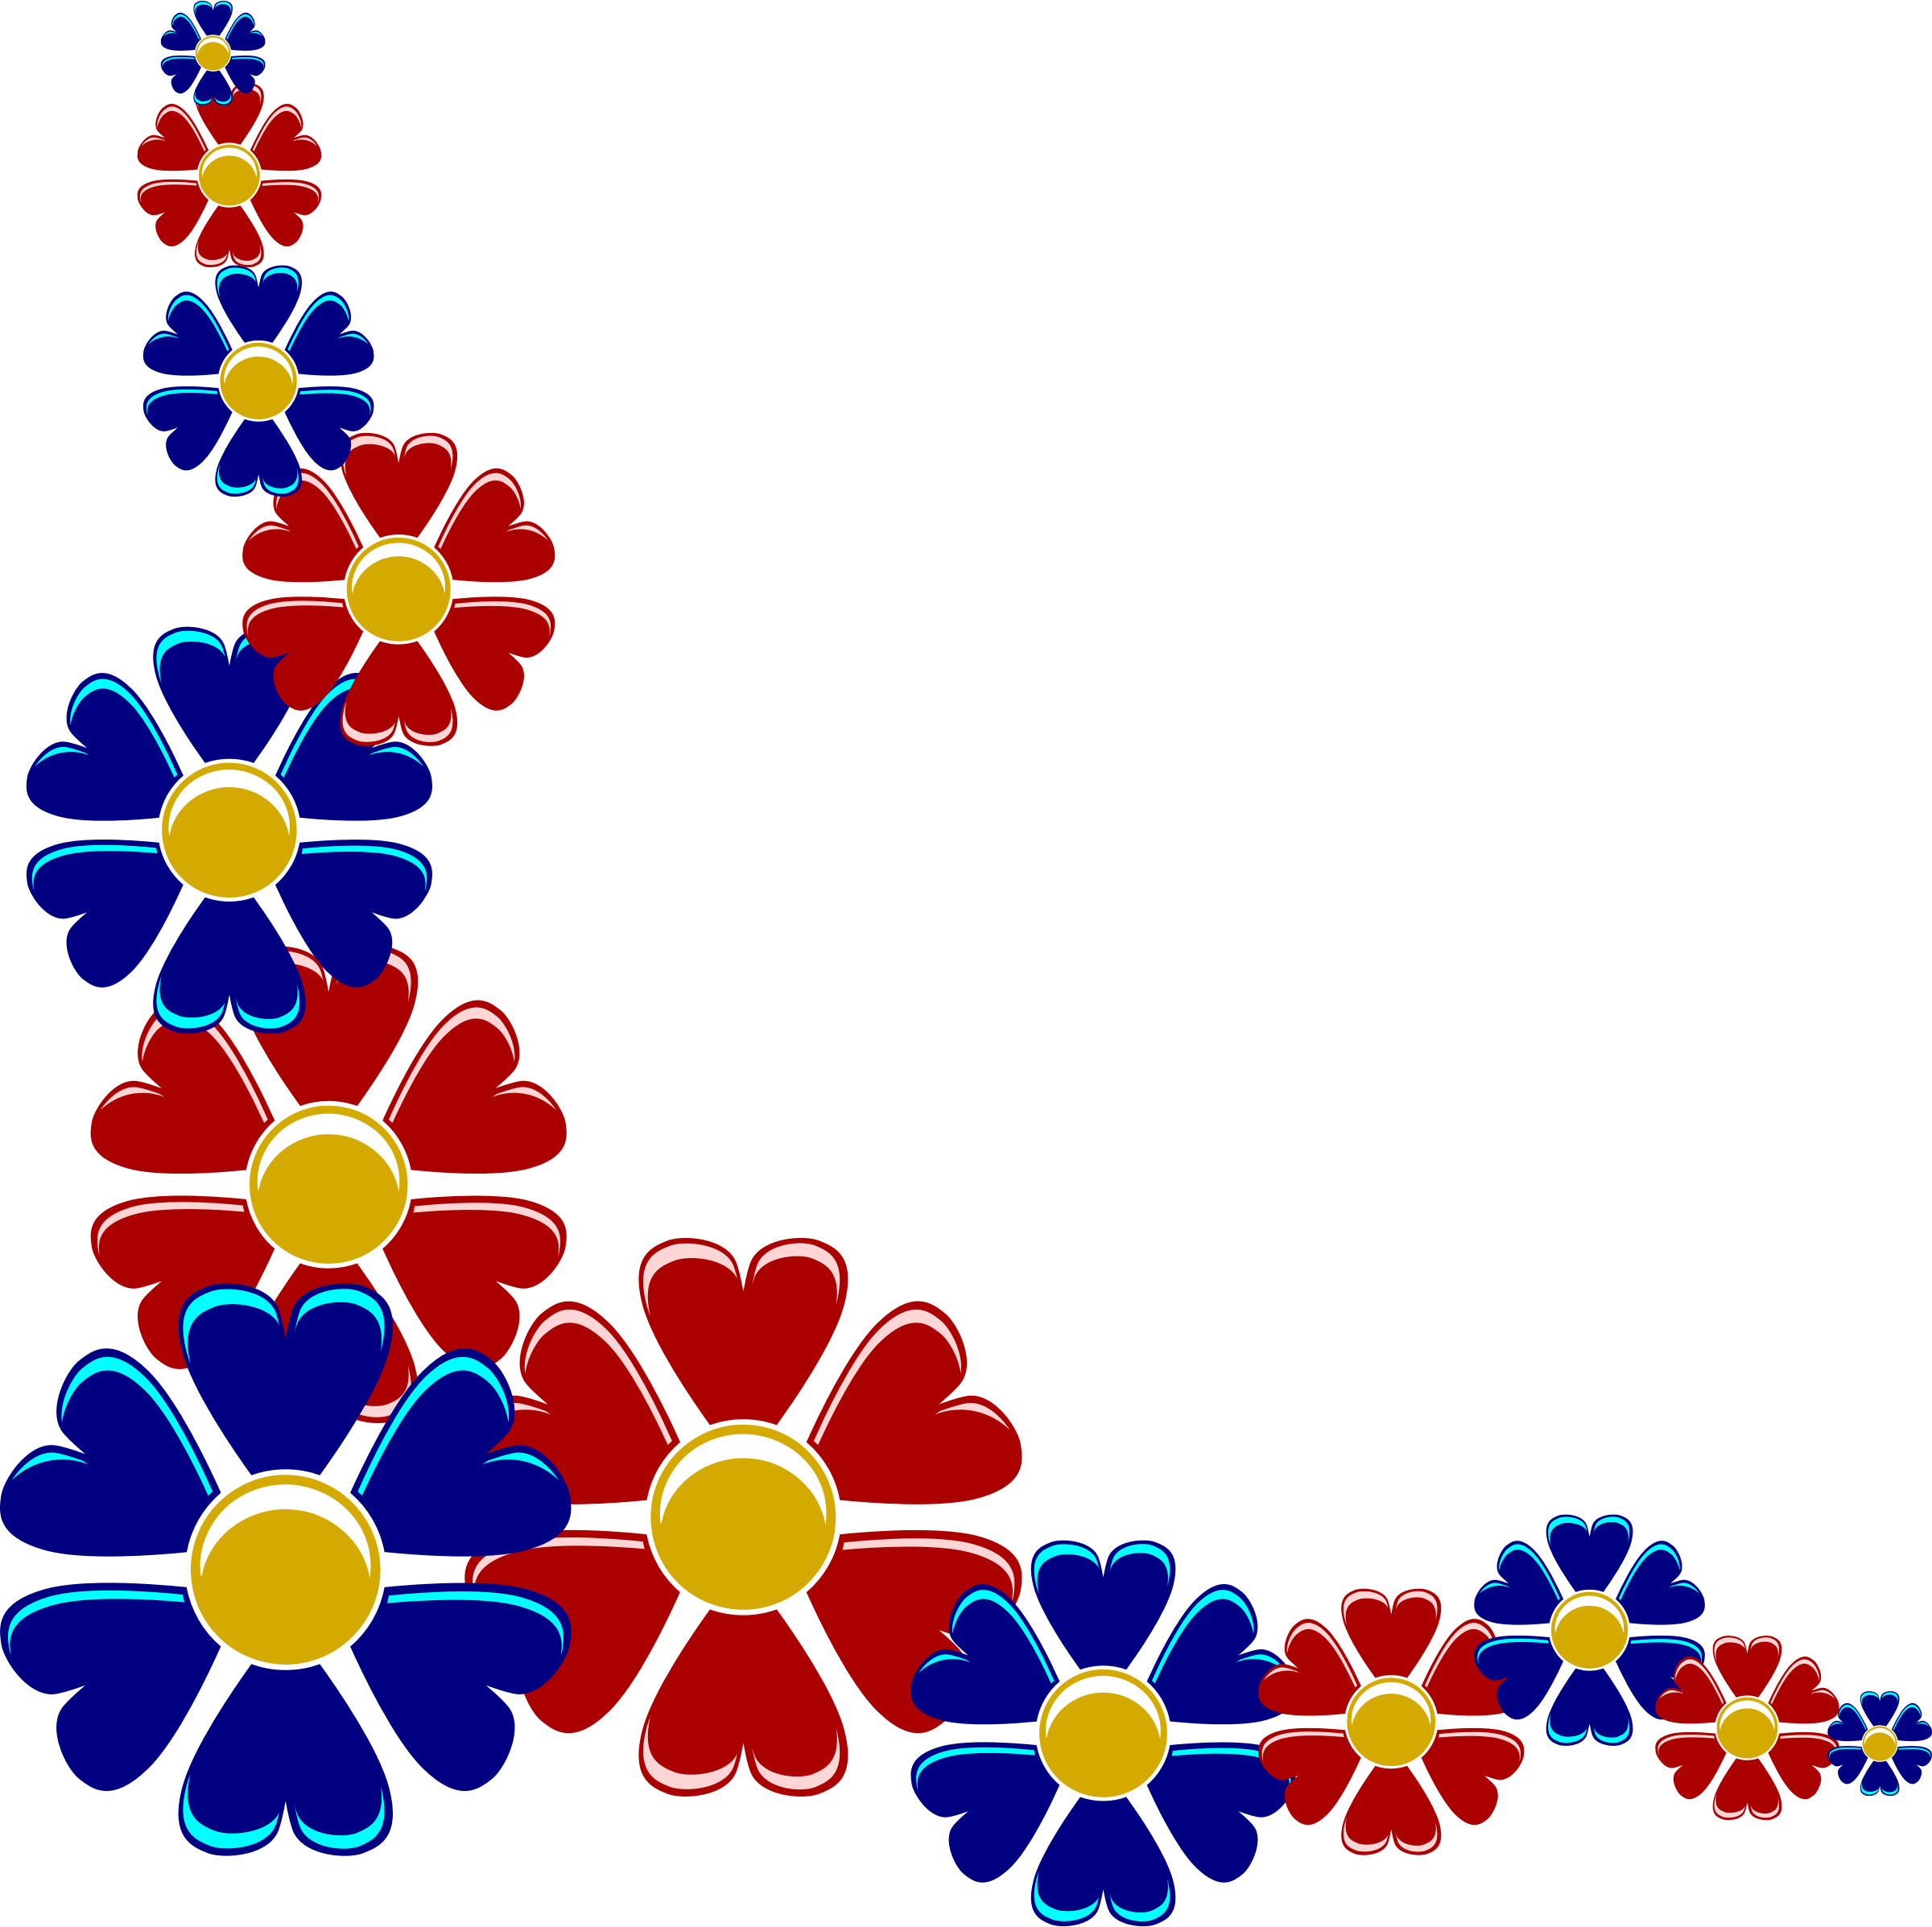 Mexican flowers vector png. Free transparent library flower